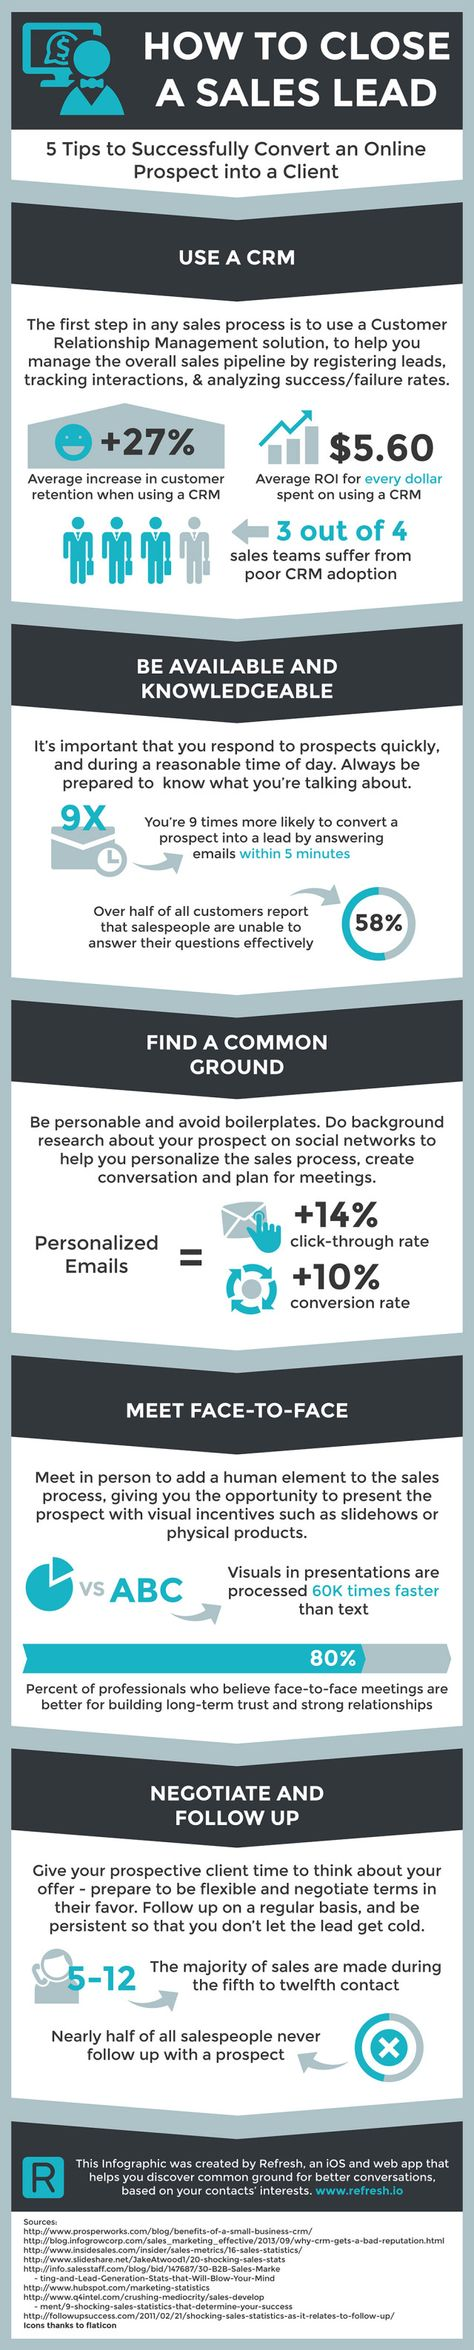 5 Tips for Closing a Sale (Infographic) | Inc.com - Great quick reference guide to help any business especially by improving their customer service...x